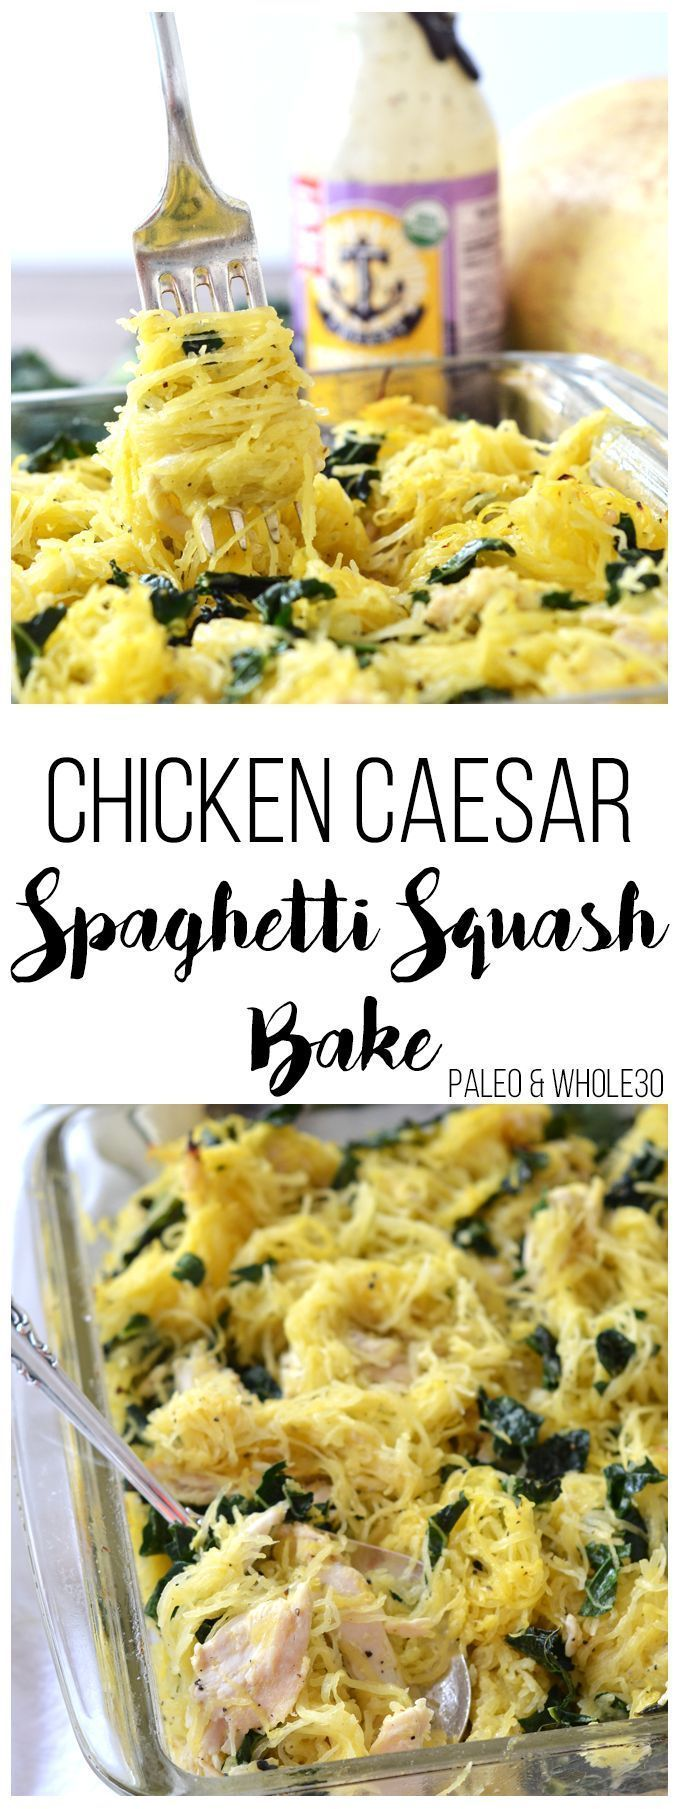 This Chicken Caesar Spaghetti Squash Bake is the perfect quick and healthy weeknight meal! Paleo & Whole30 approved!